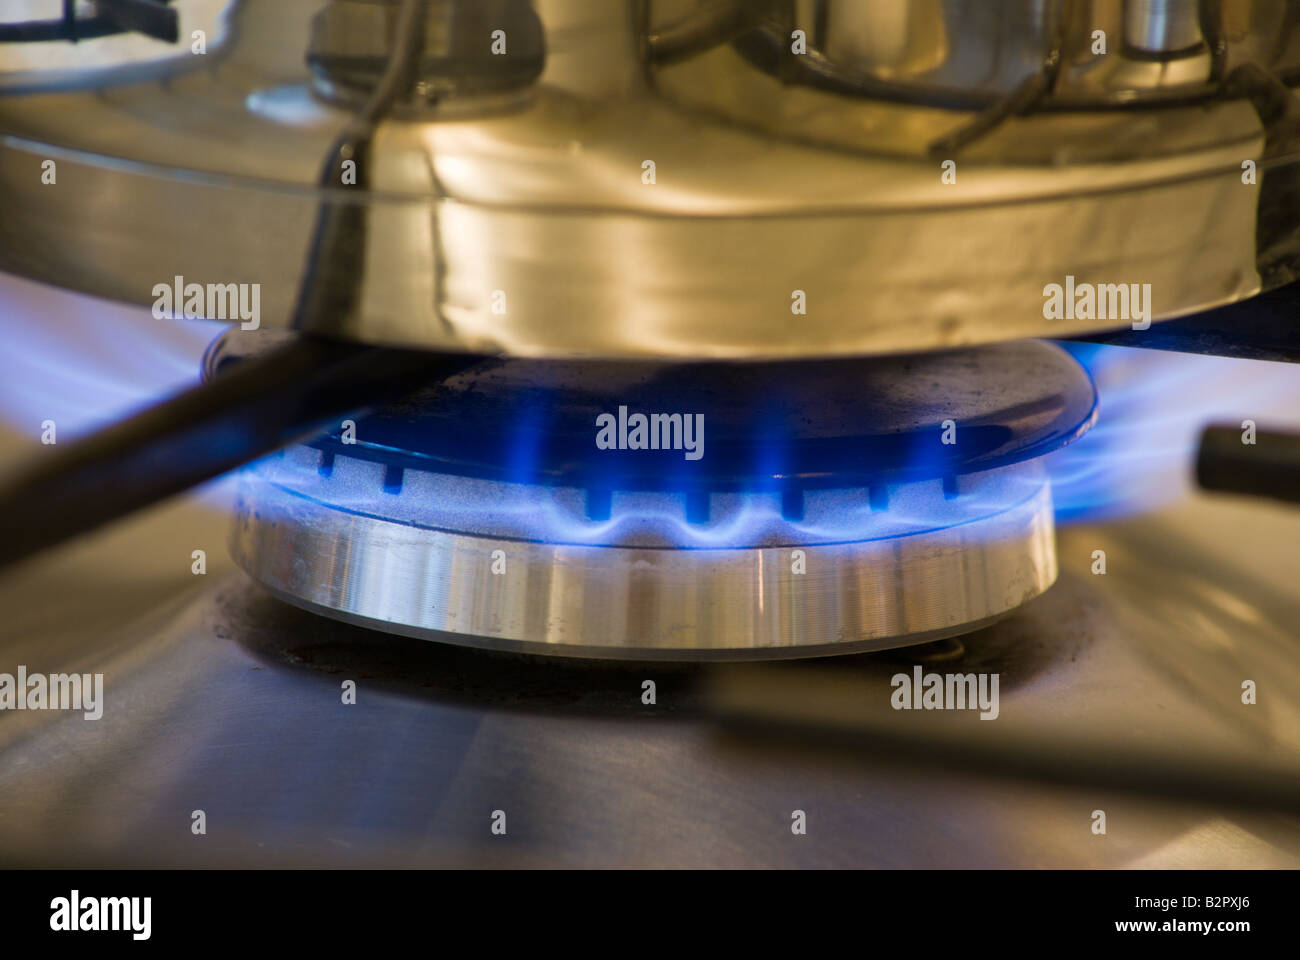 Cooking with gas - Stock Image